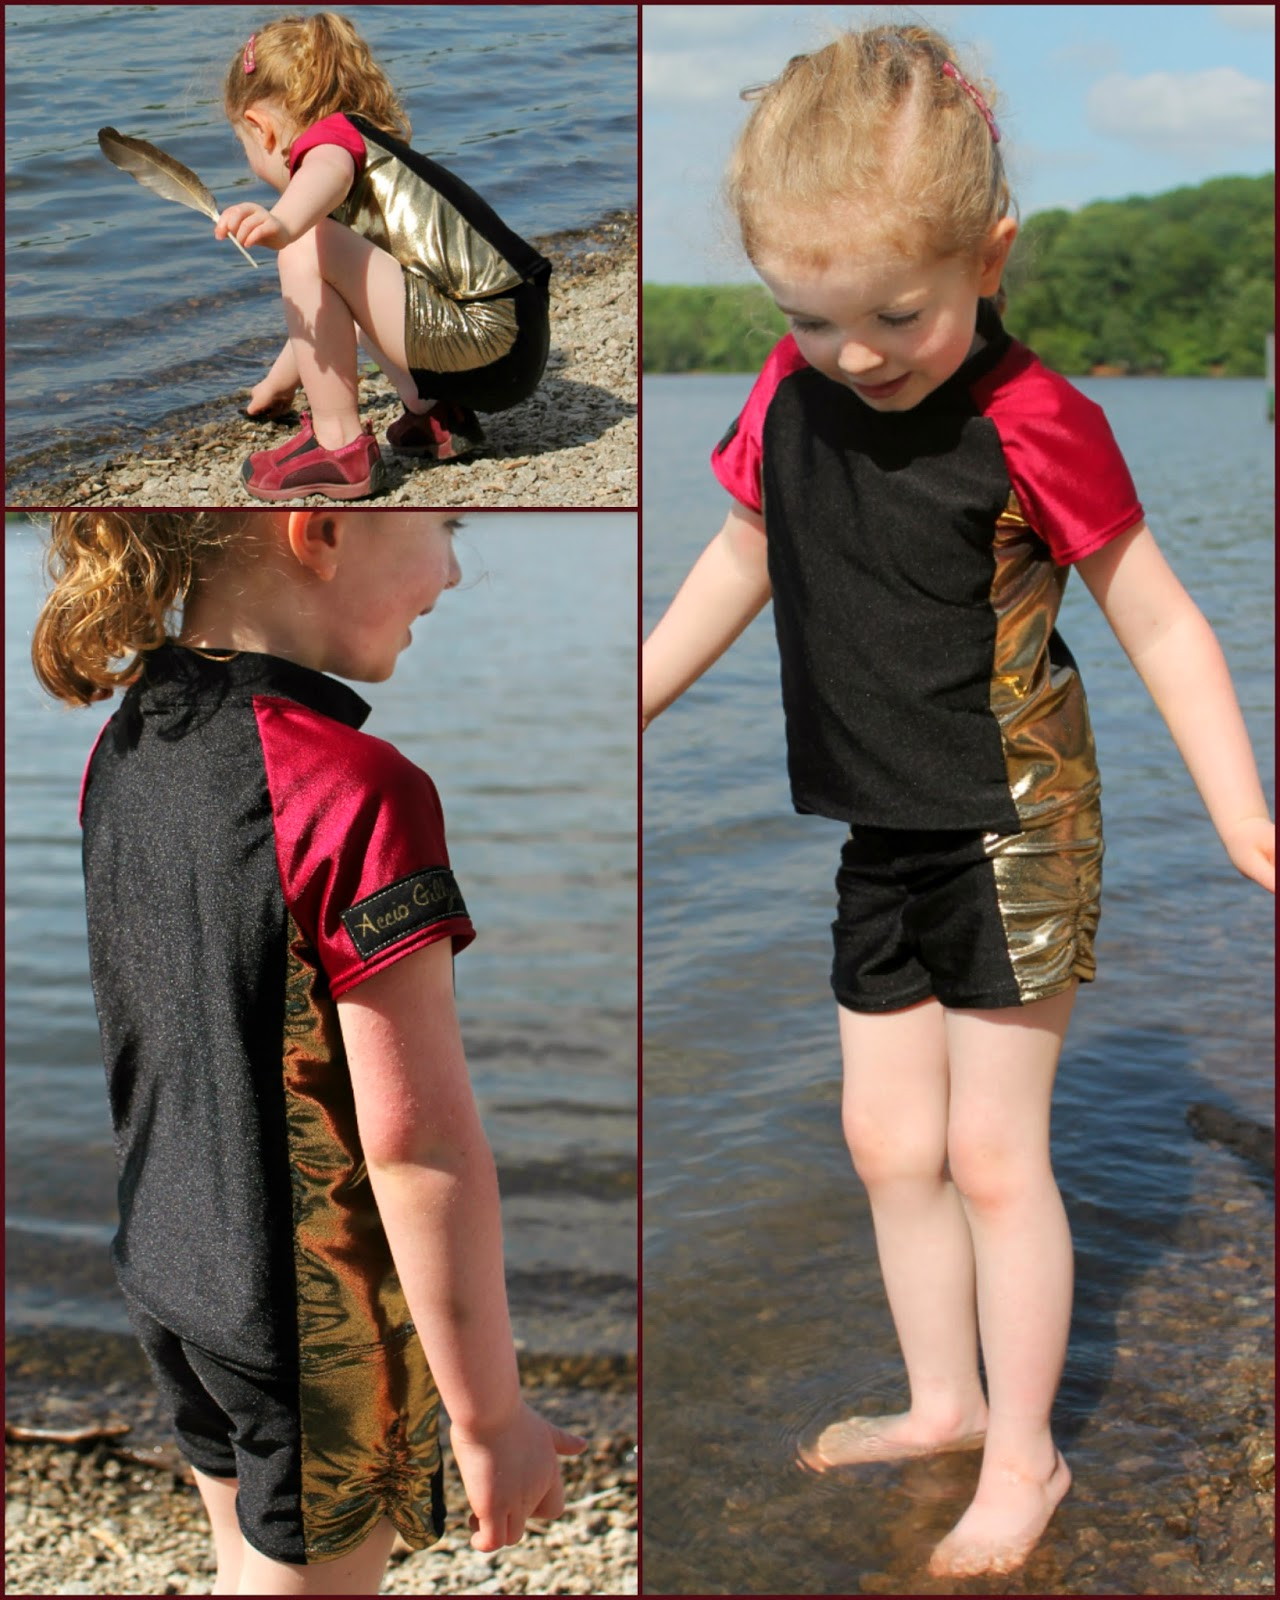 Harry Potter Triwizard Swimwear | The Inspired Wren for CraftingCon